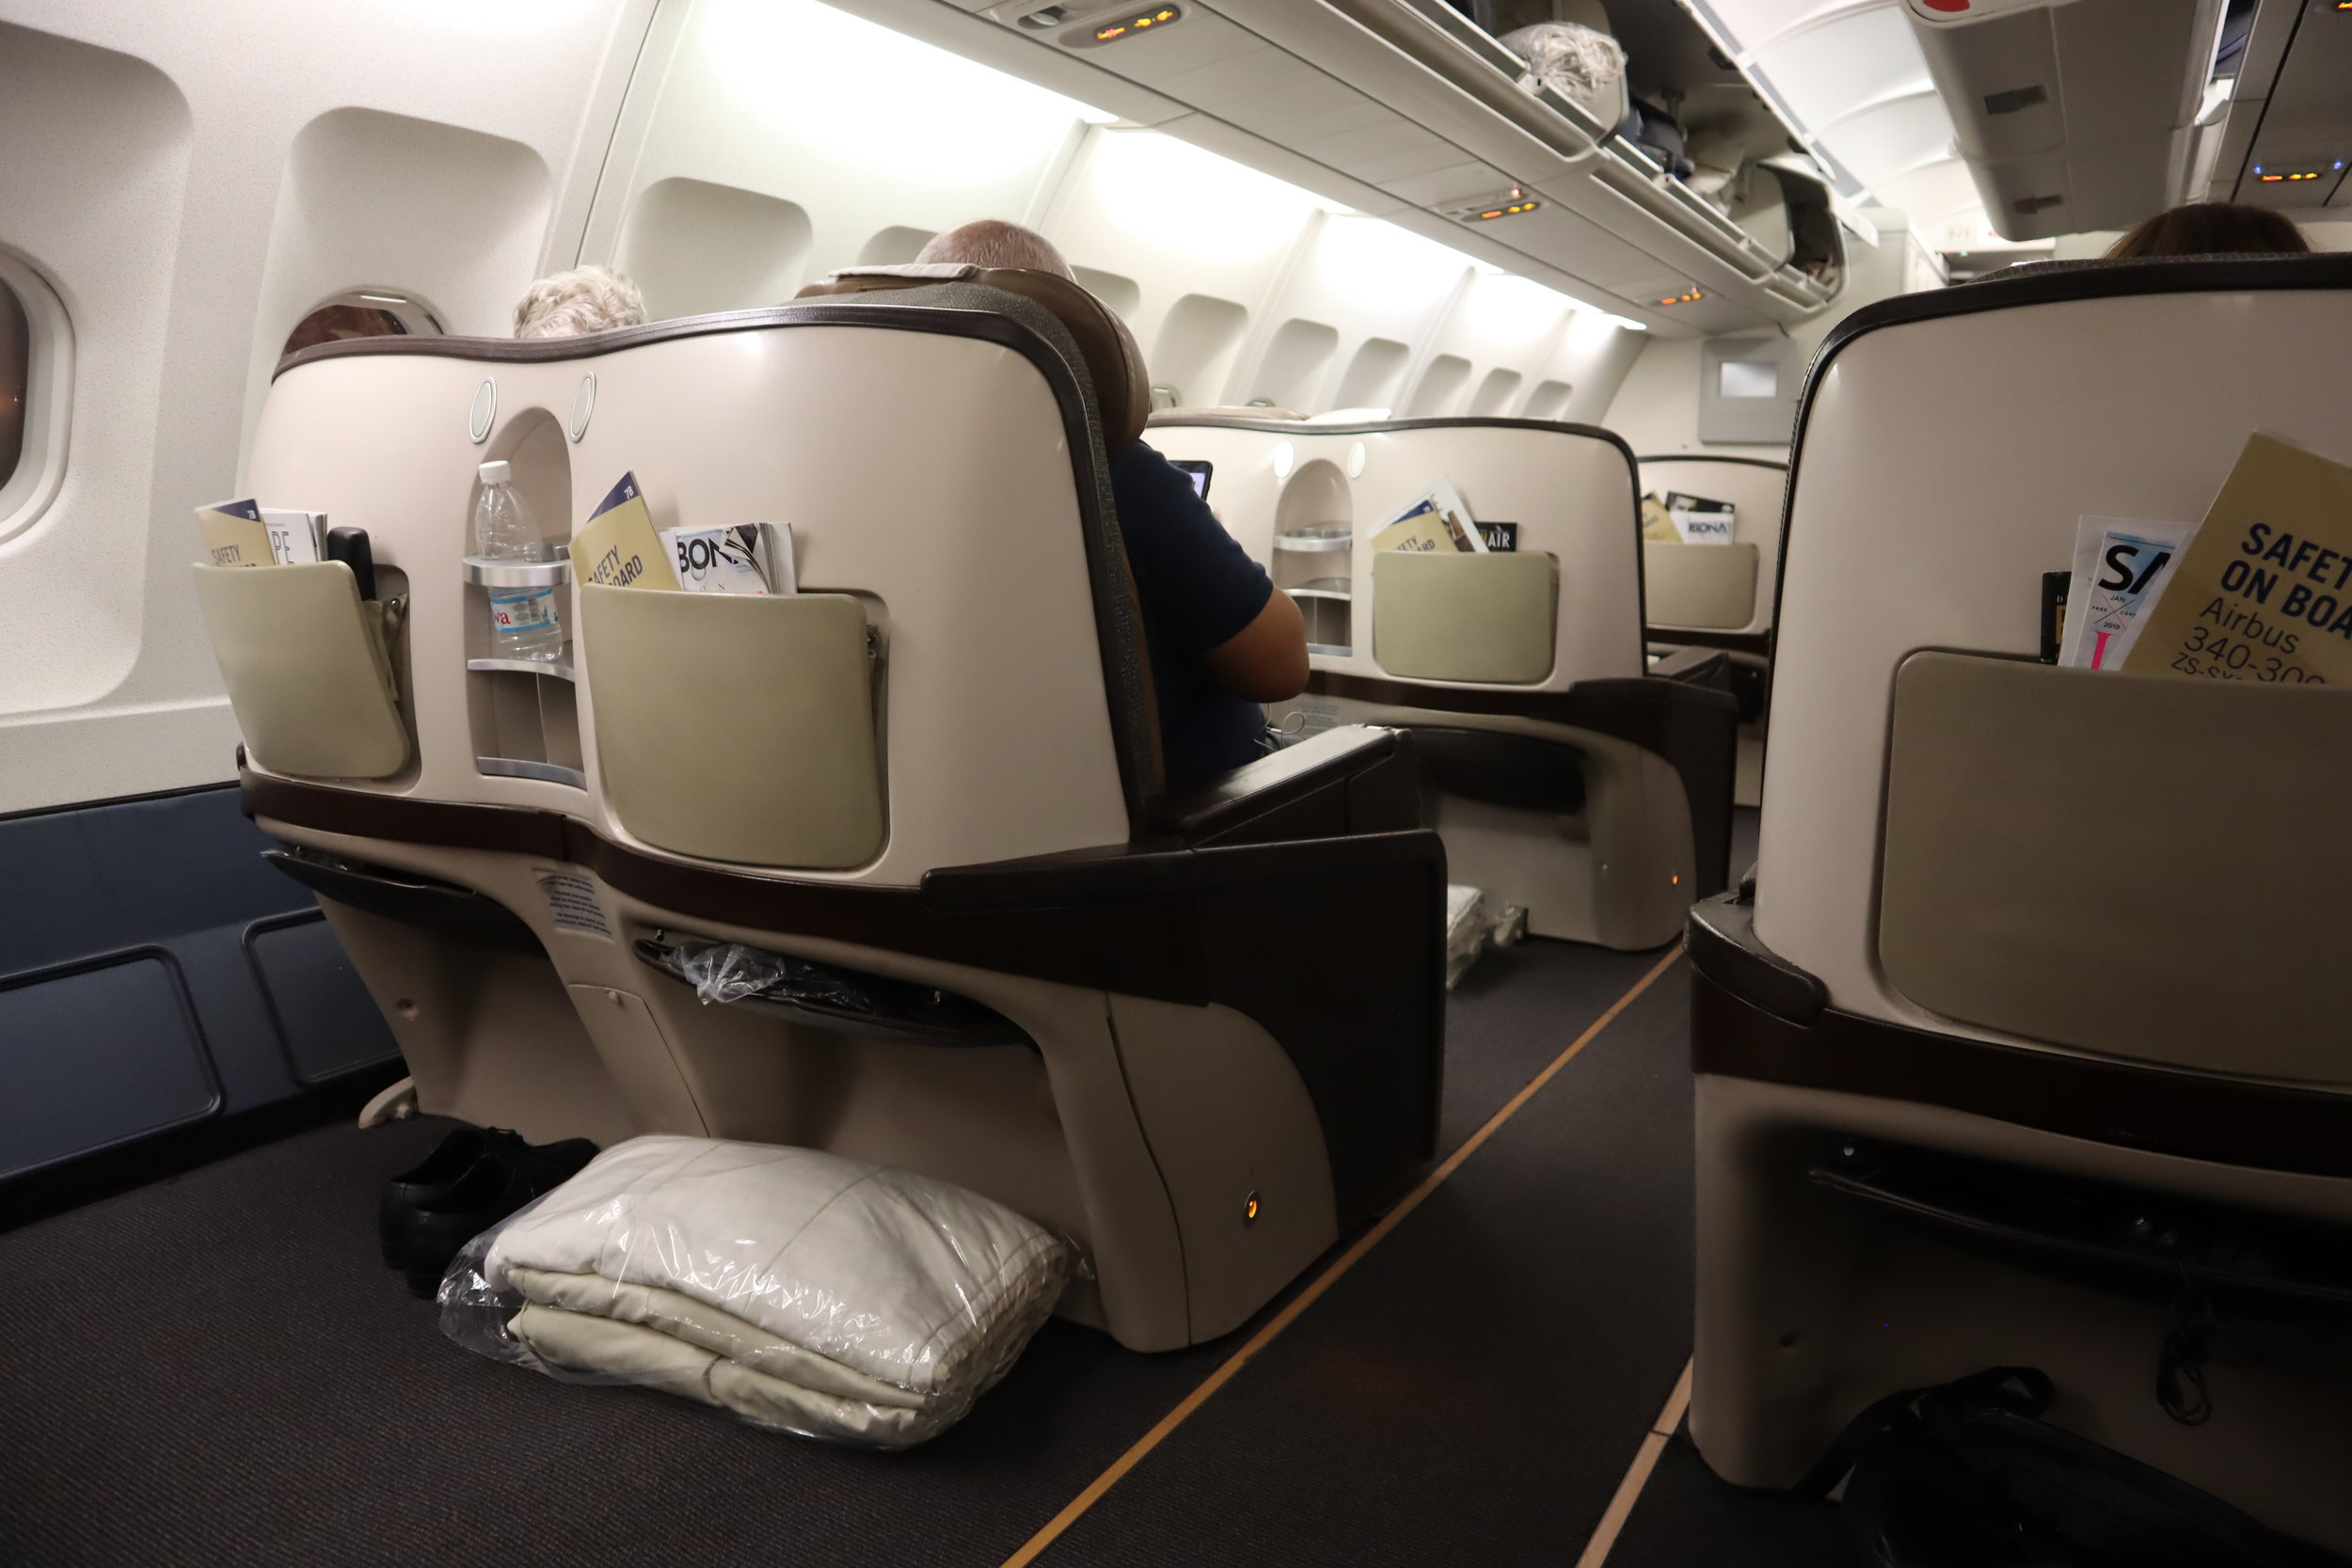 South African Airways business class – Cabin